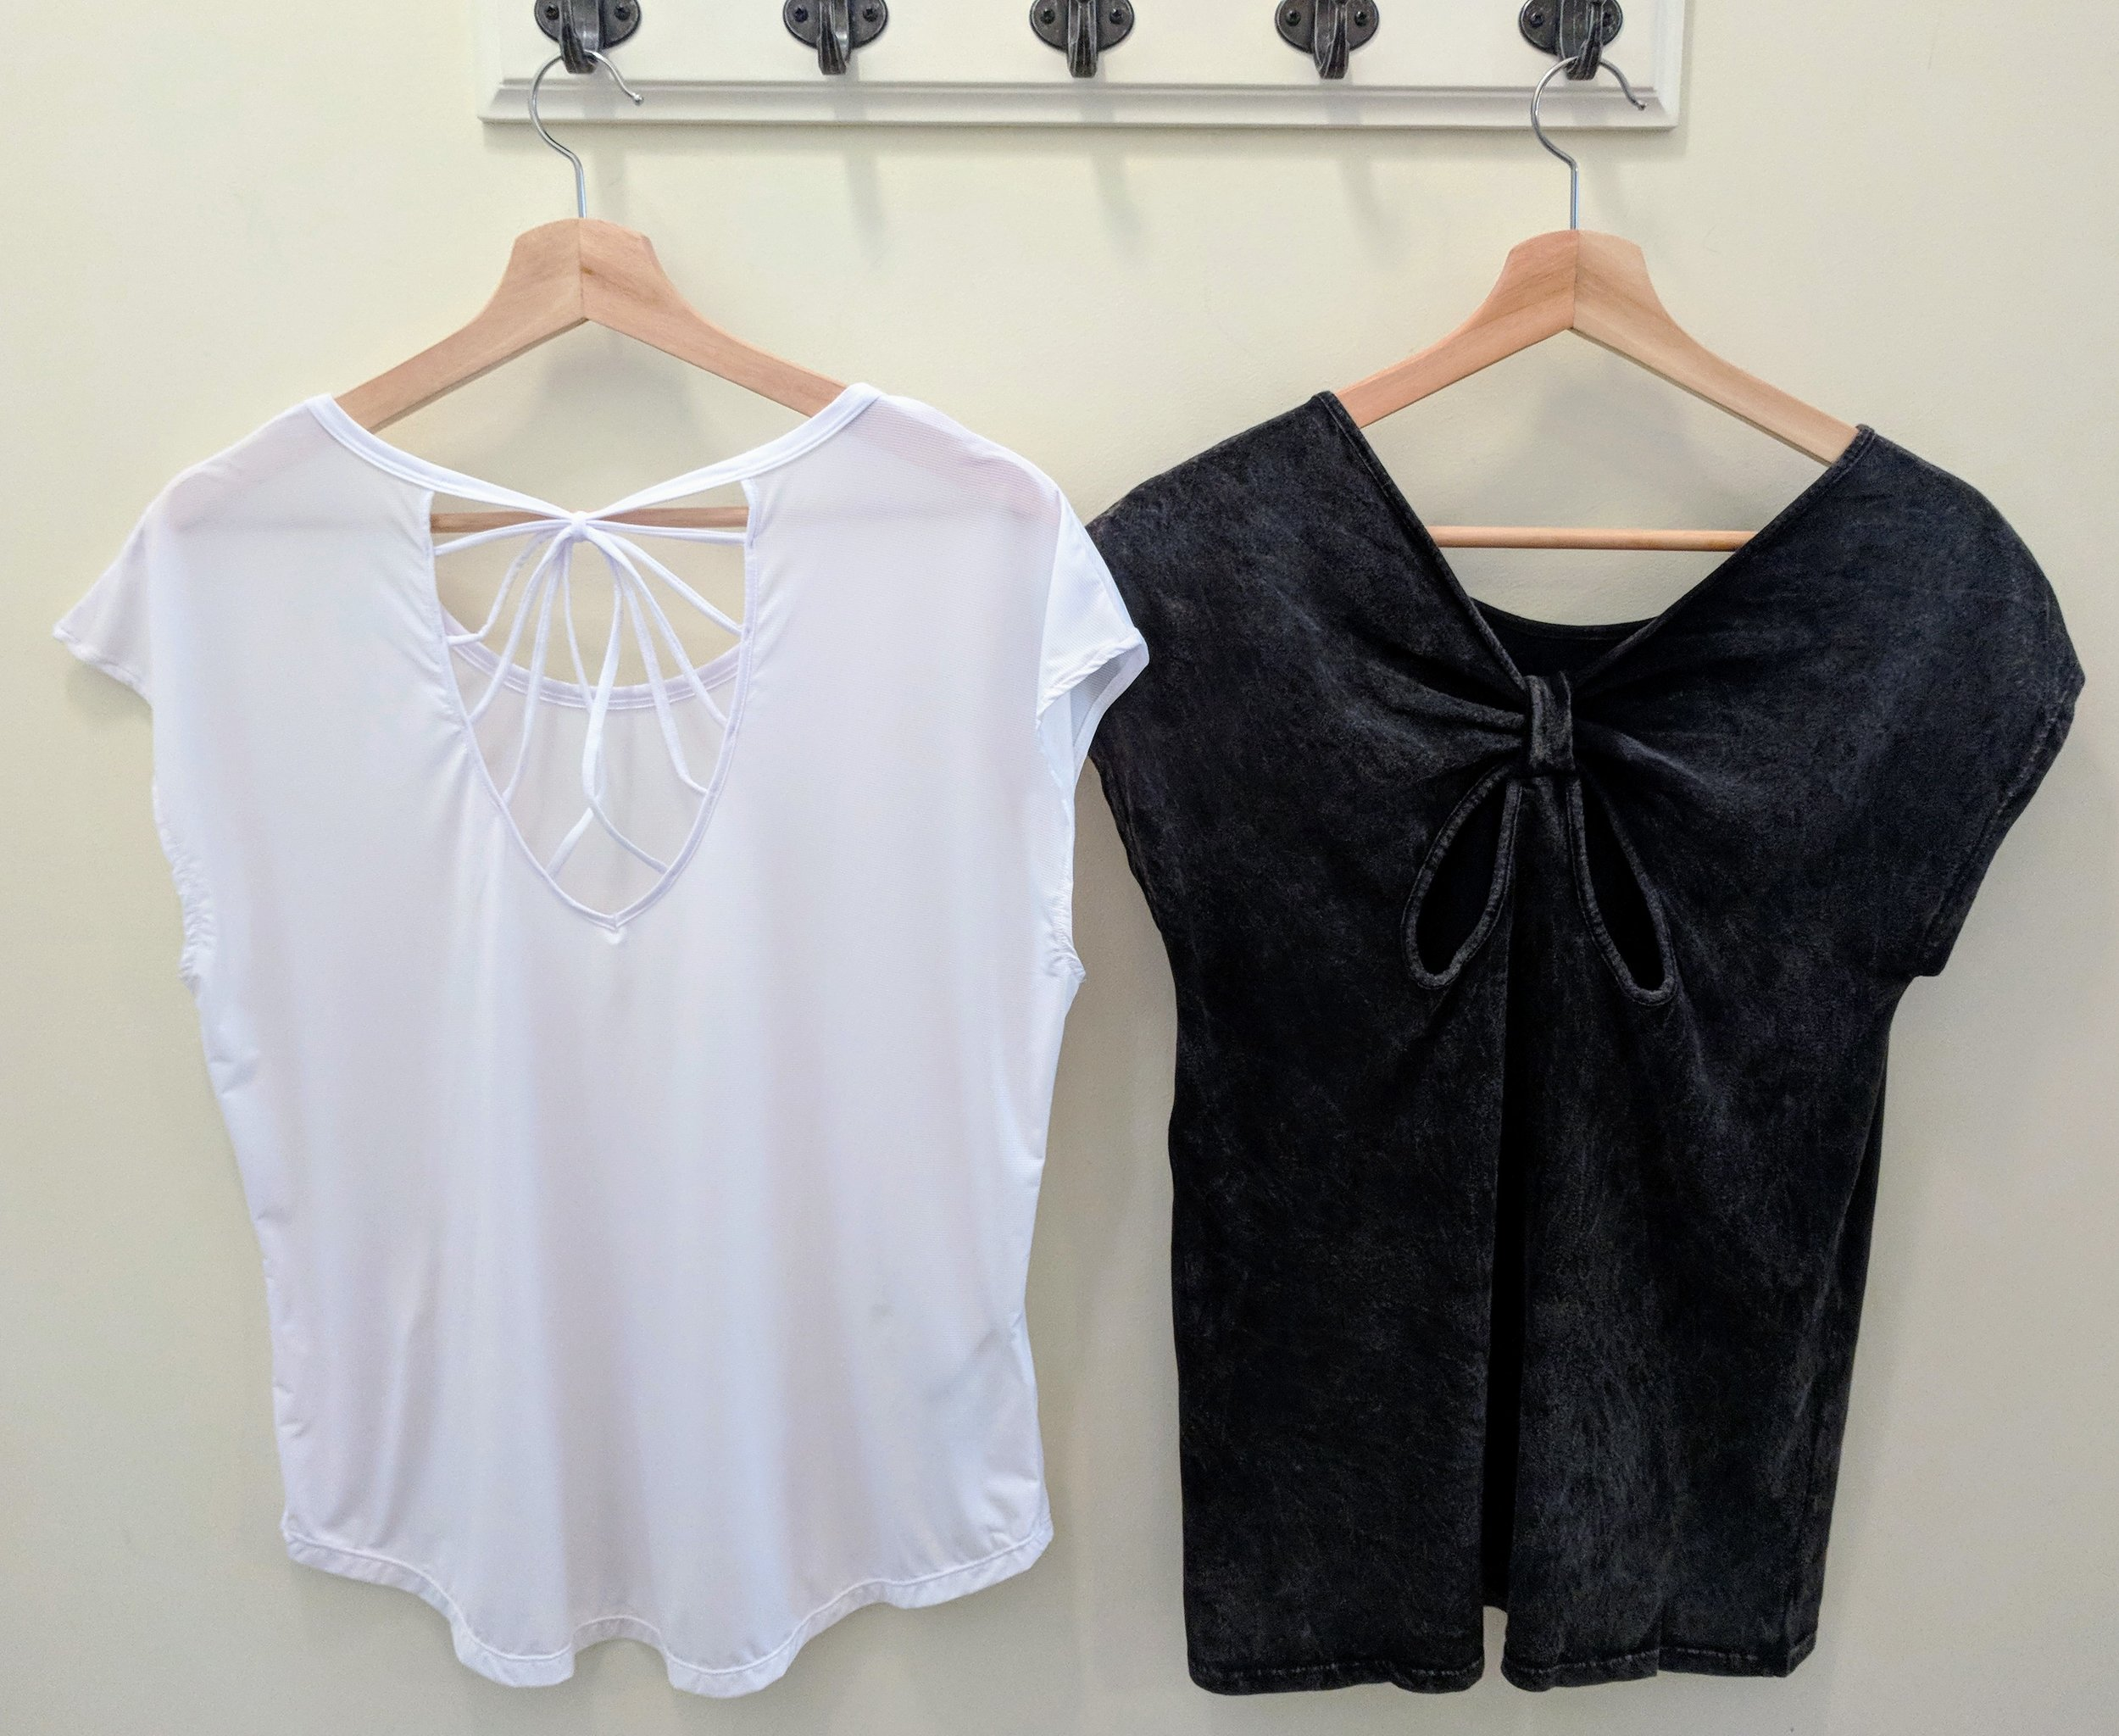 White strappy back active top $28,Charcoal butterfly tie-back active top $28